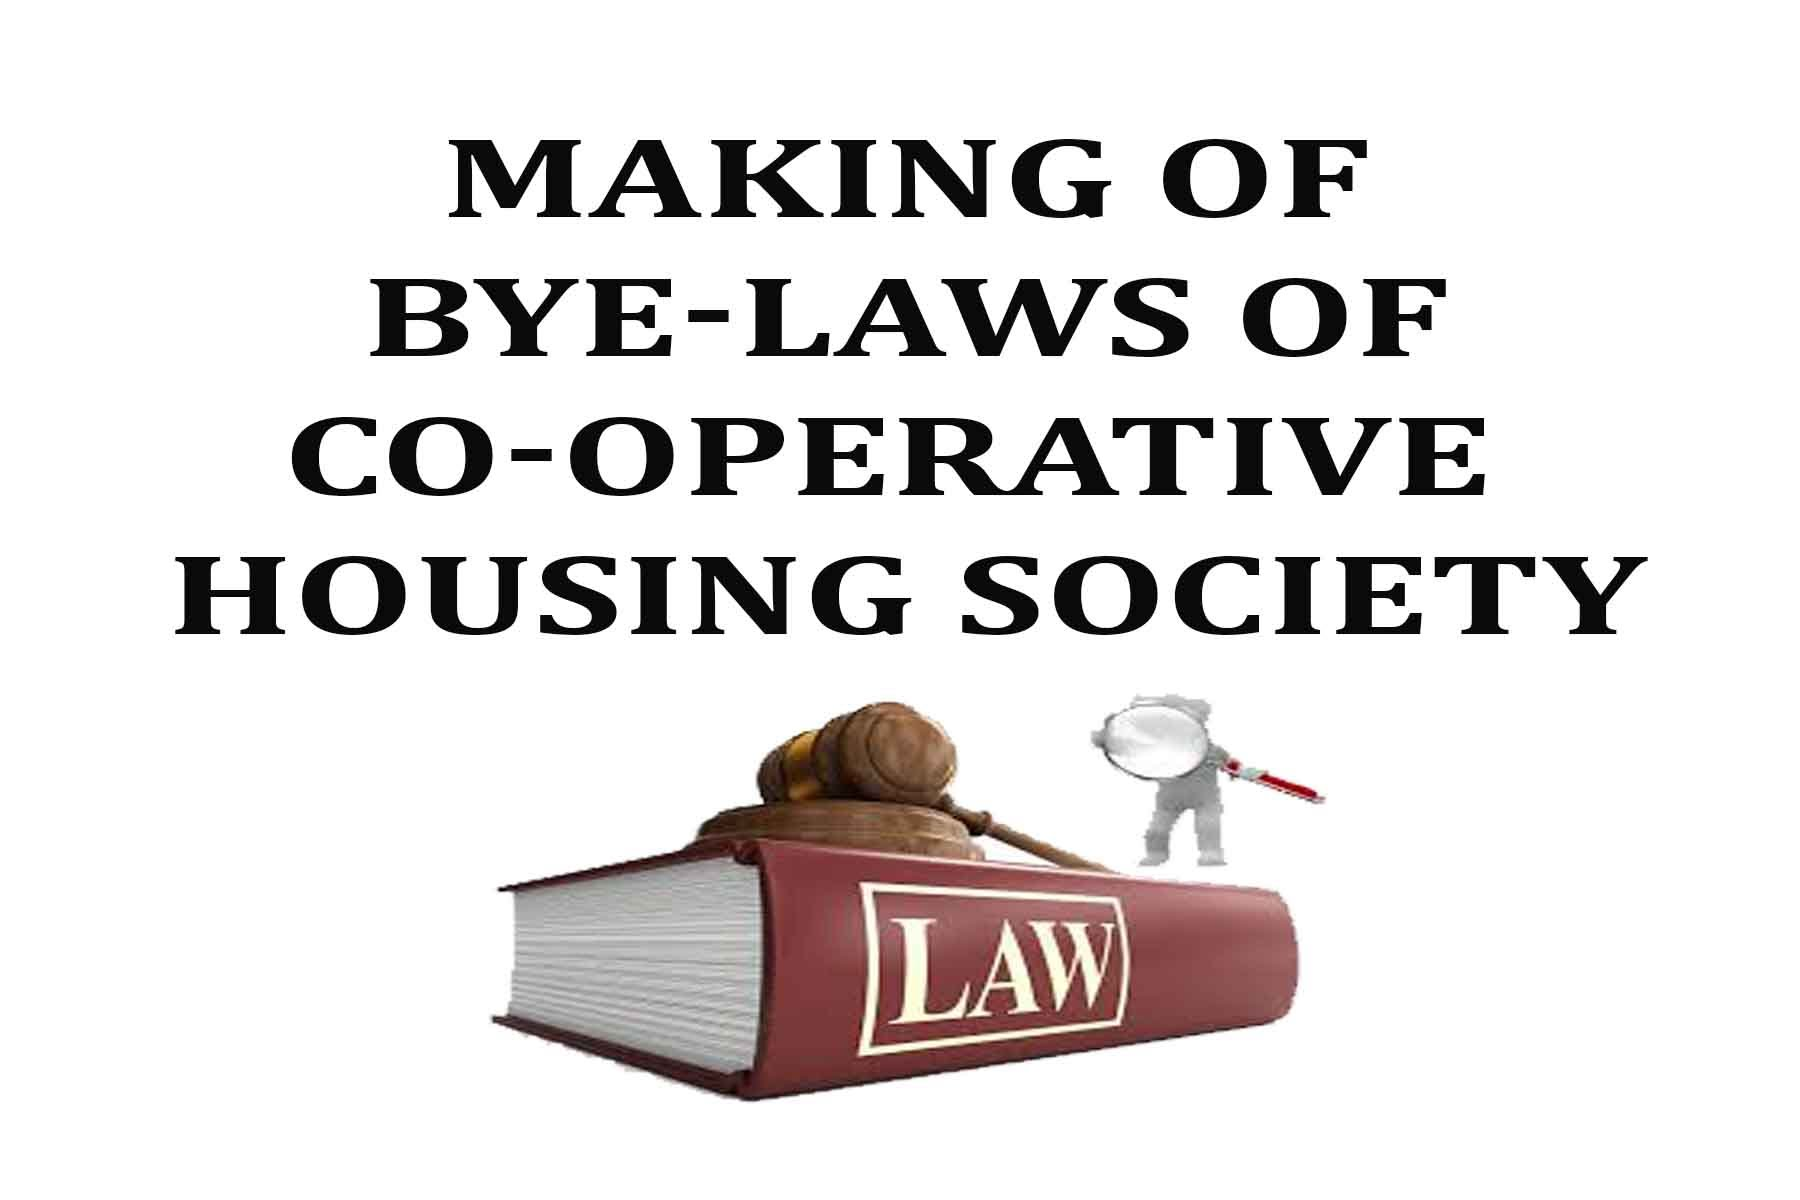 formation / registration of co-operative housing societies - ved legal